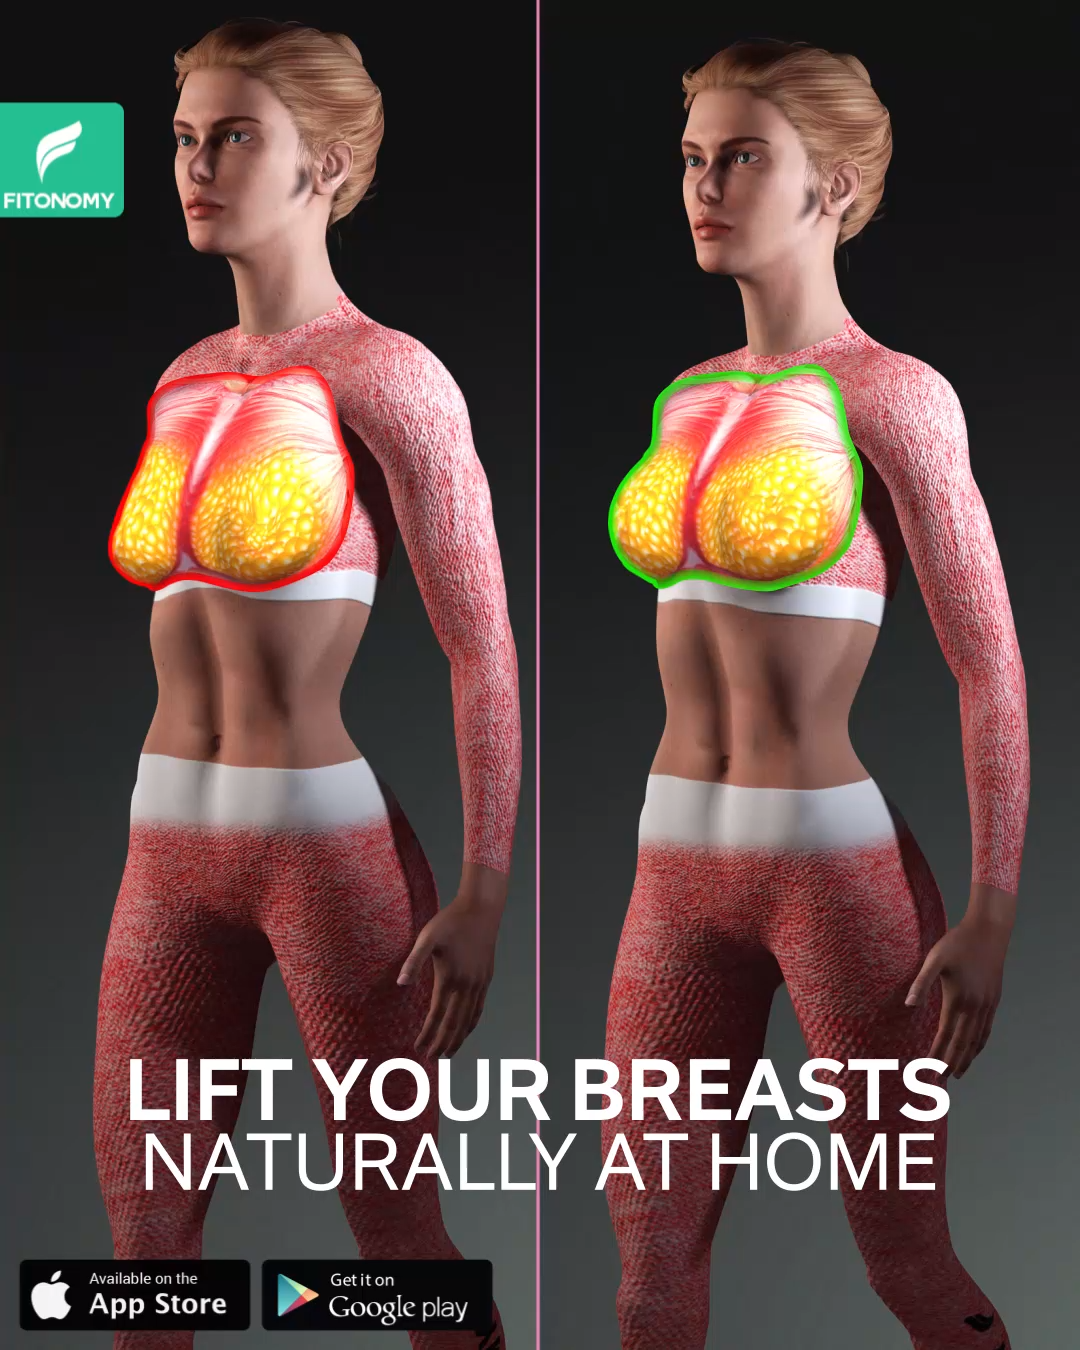 LIFT YOUR BREASTS NATURALLY AT HOME